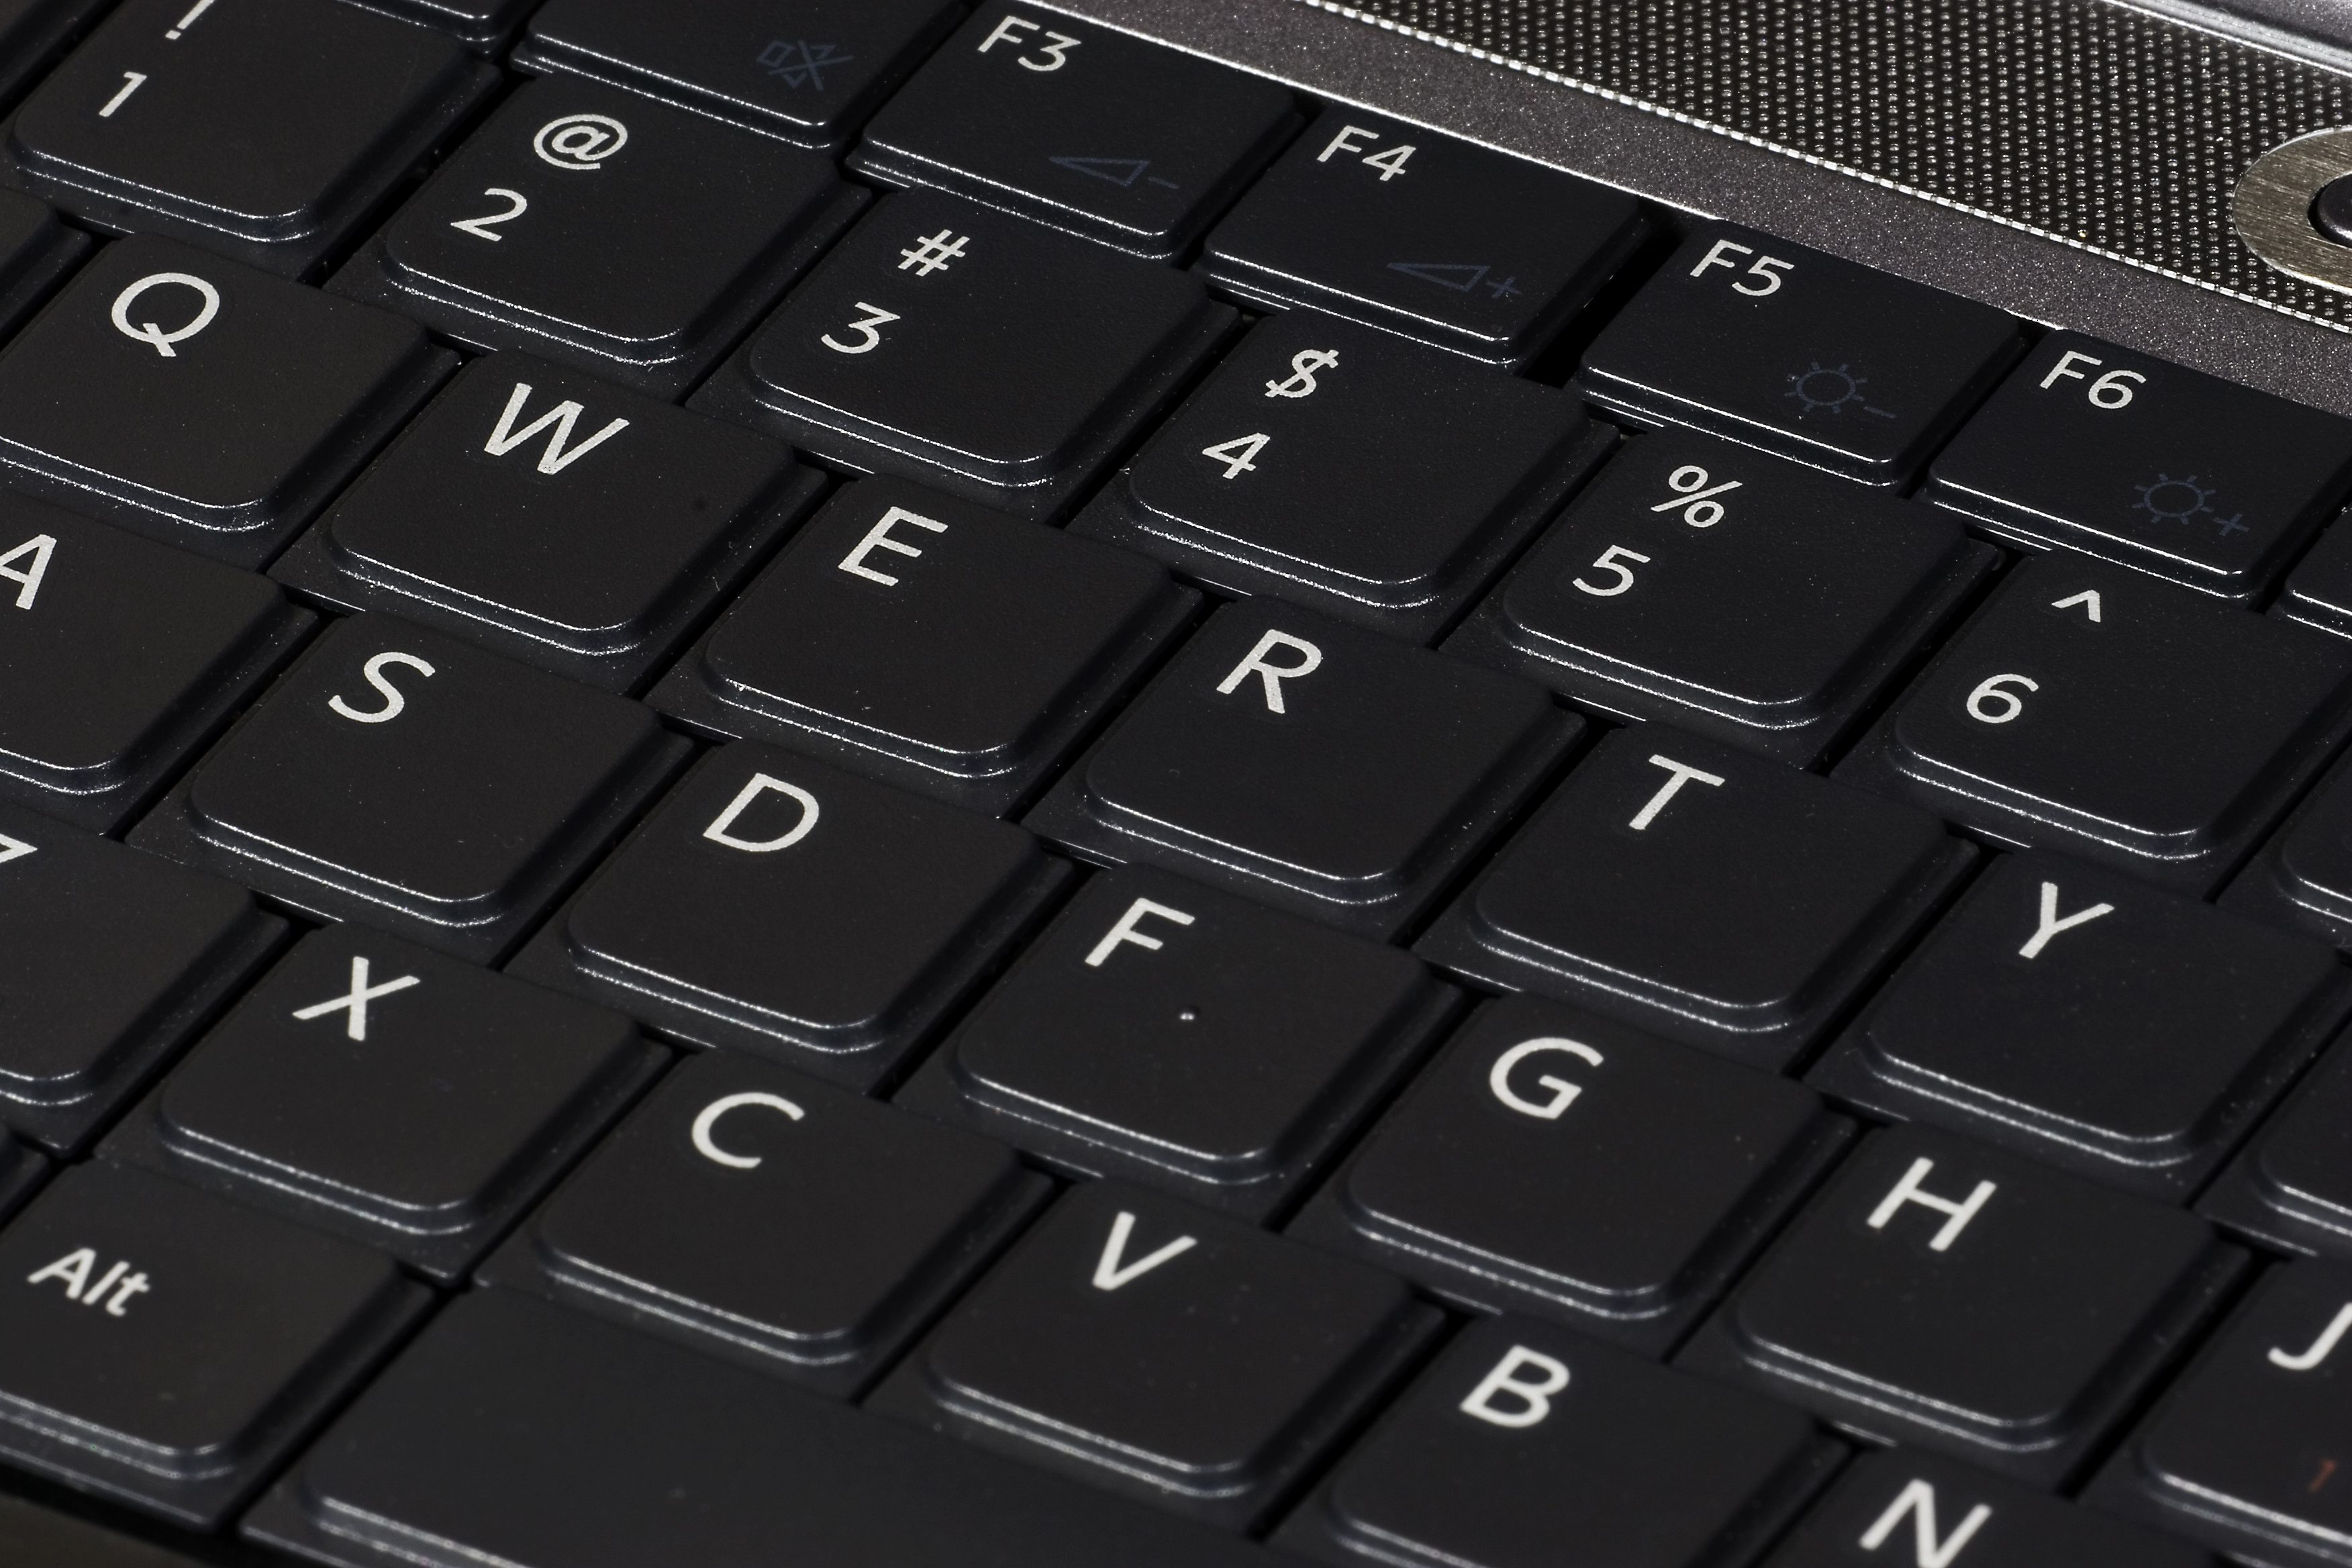 https://i1.wp.com/upload.wikimedia.org/wikipedia/commons/0/0a/QWERTY_keyboard.jpg